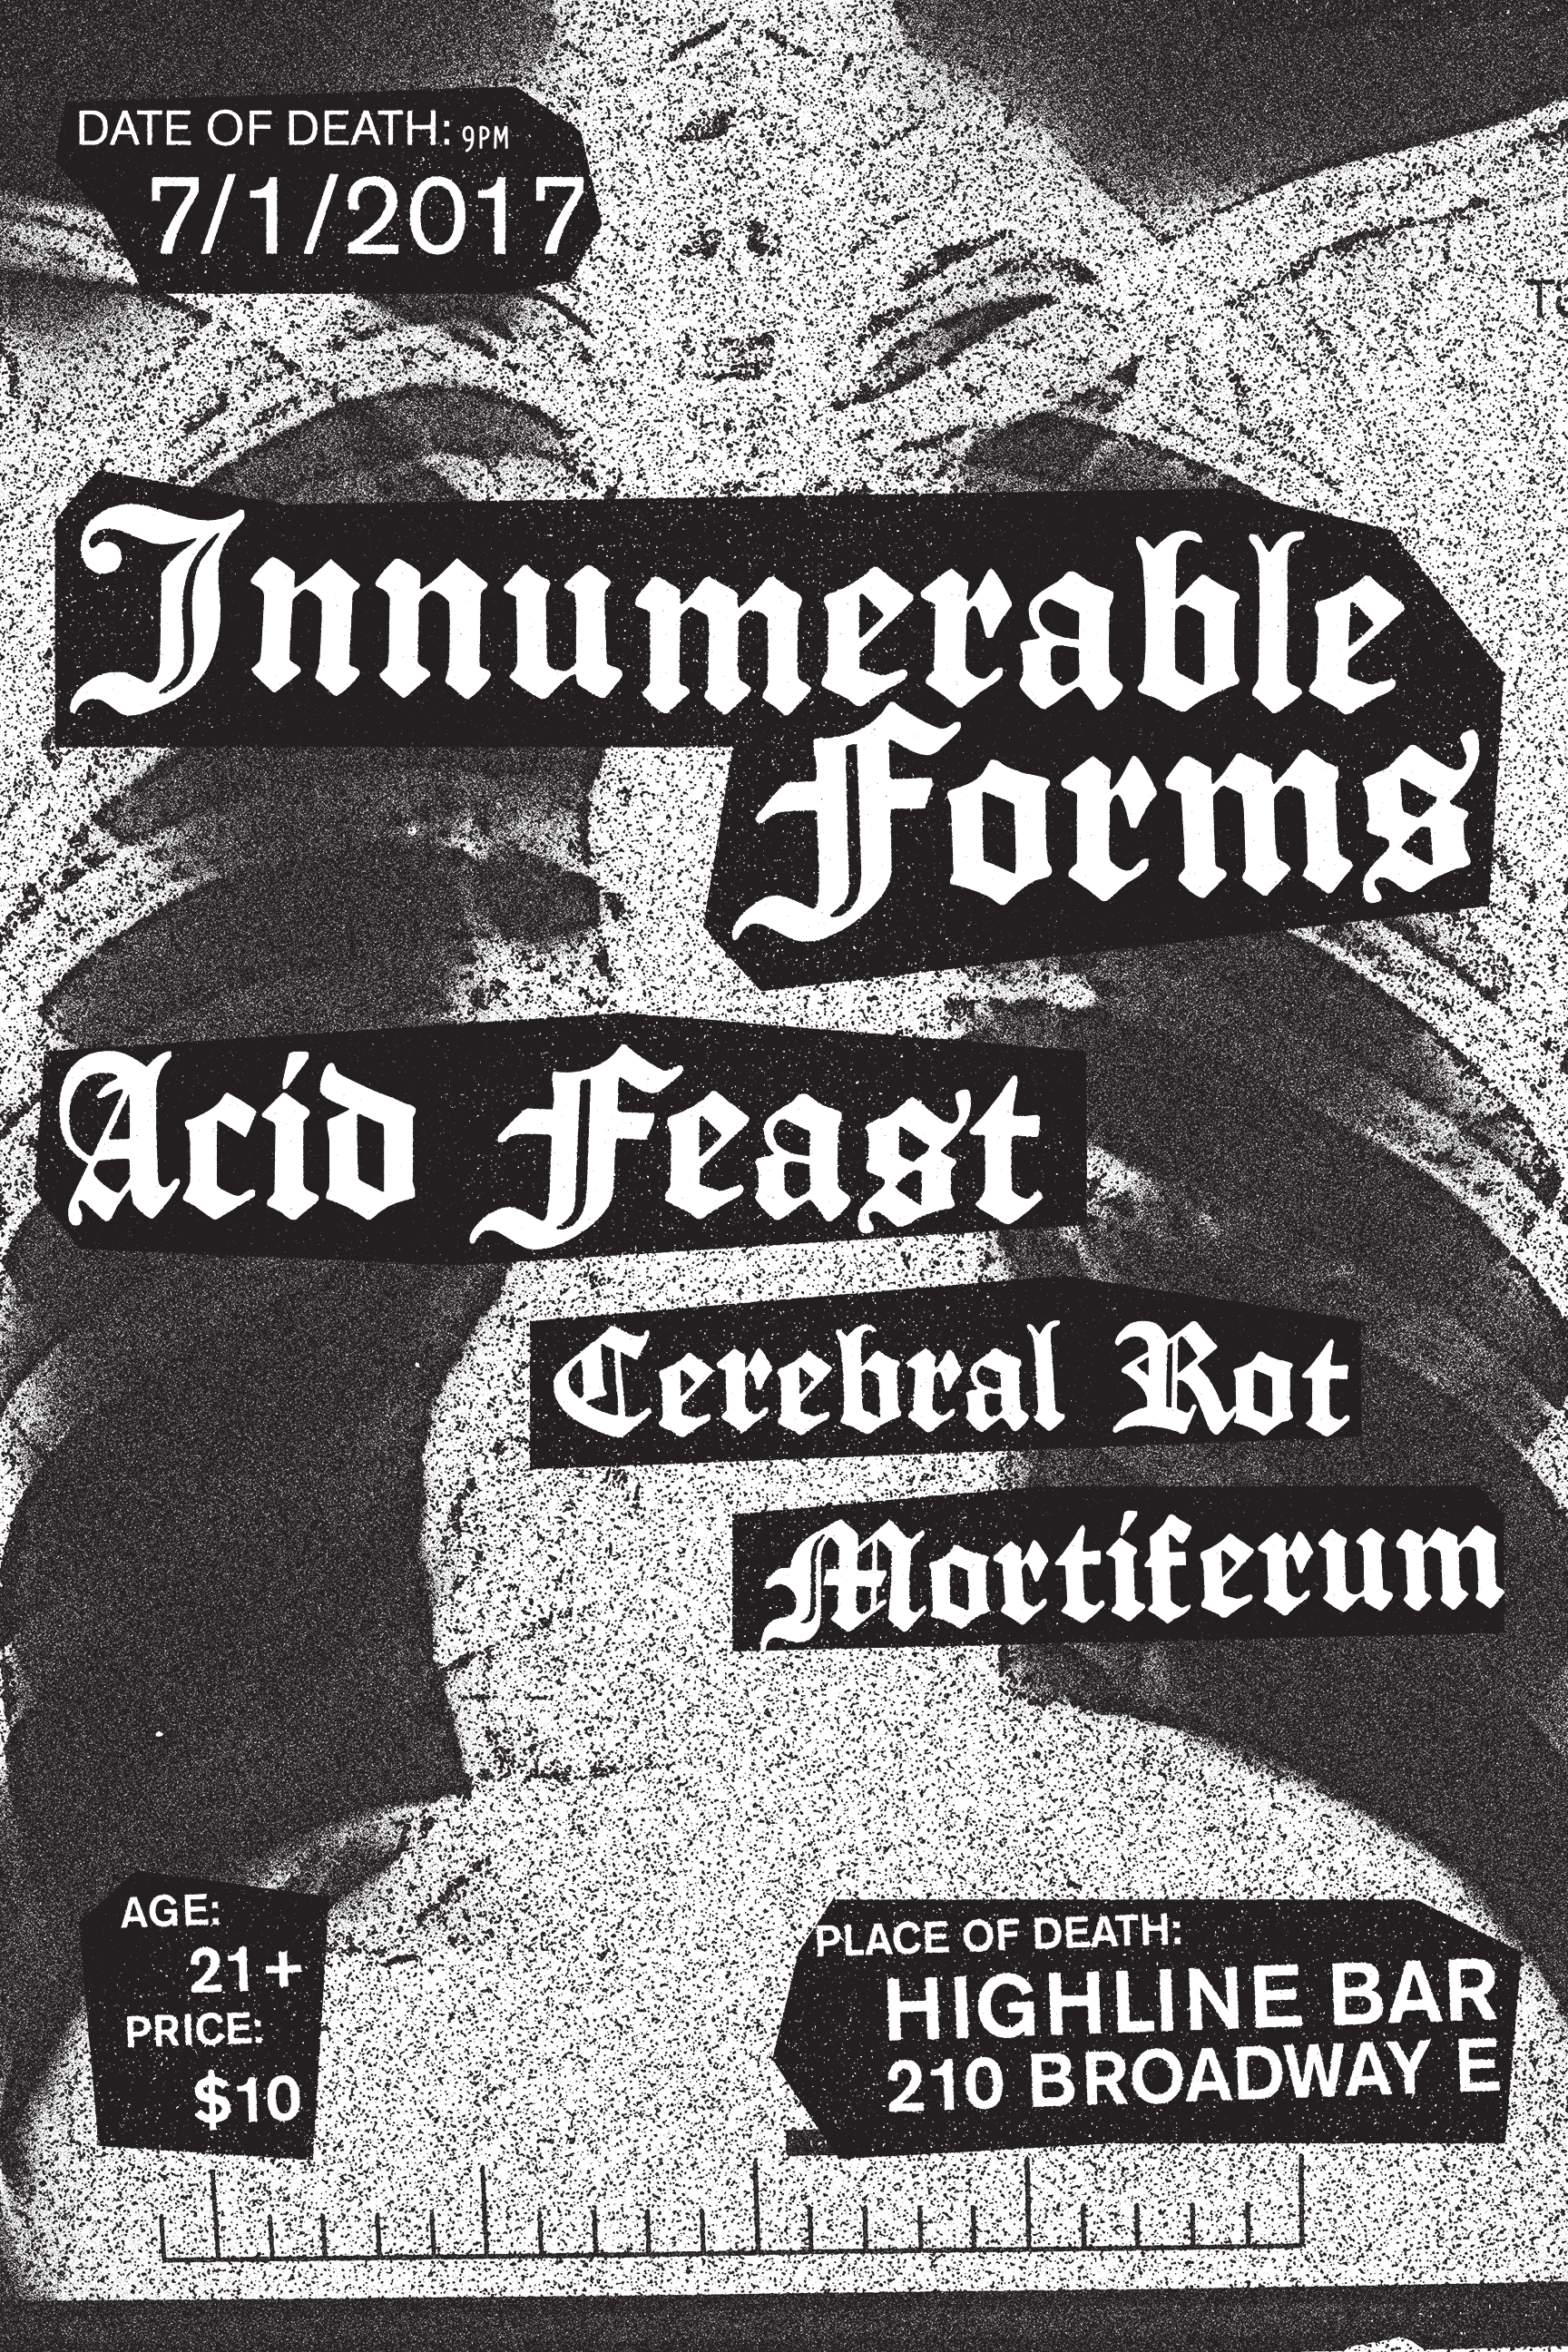 Innummerable Forms Poster